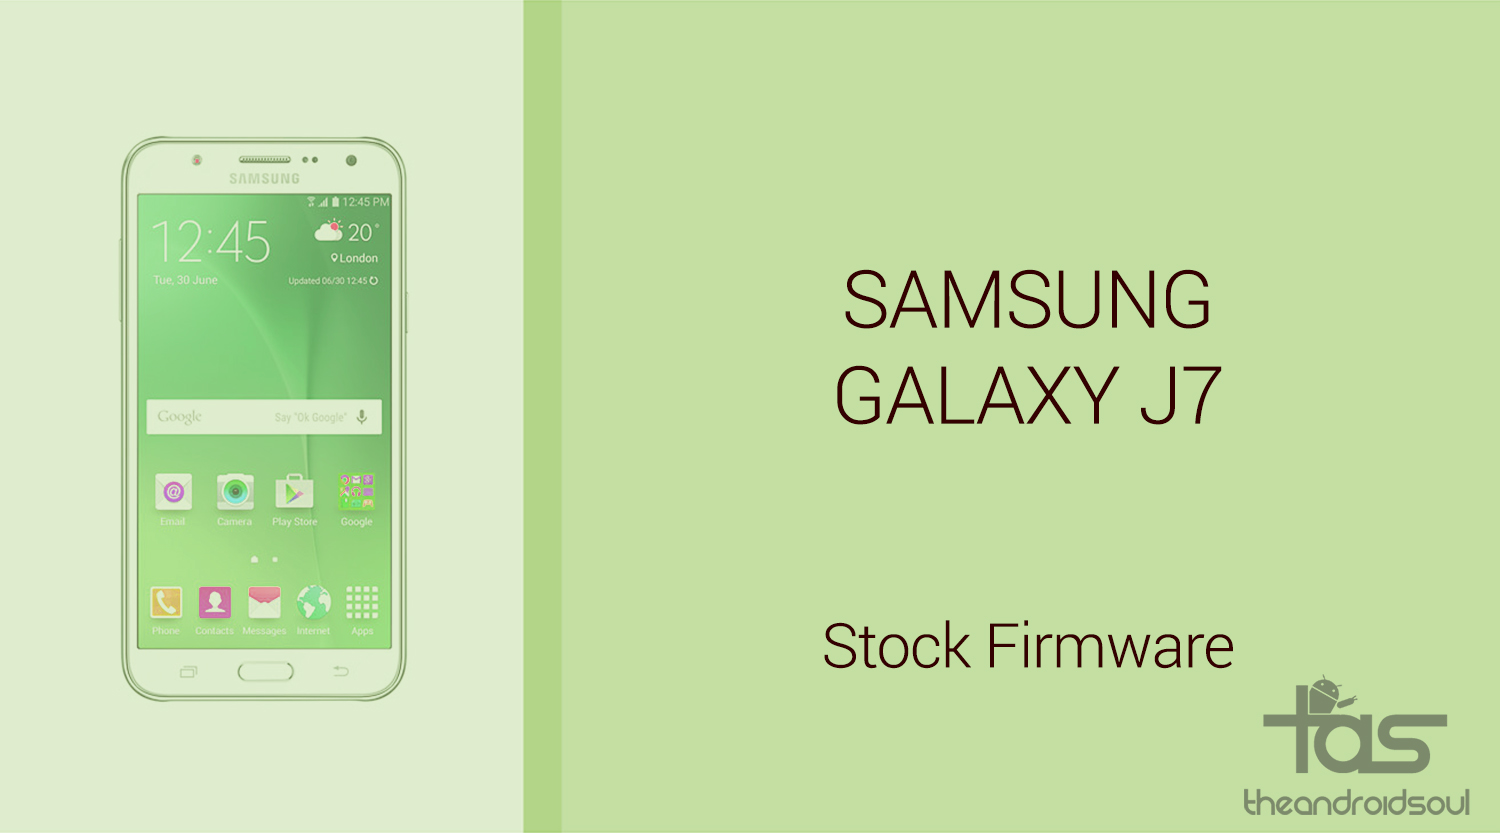 samsung g610f 7.0.1 flash file